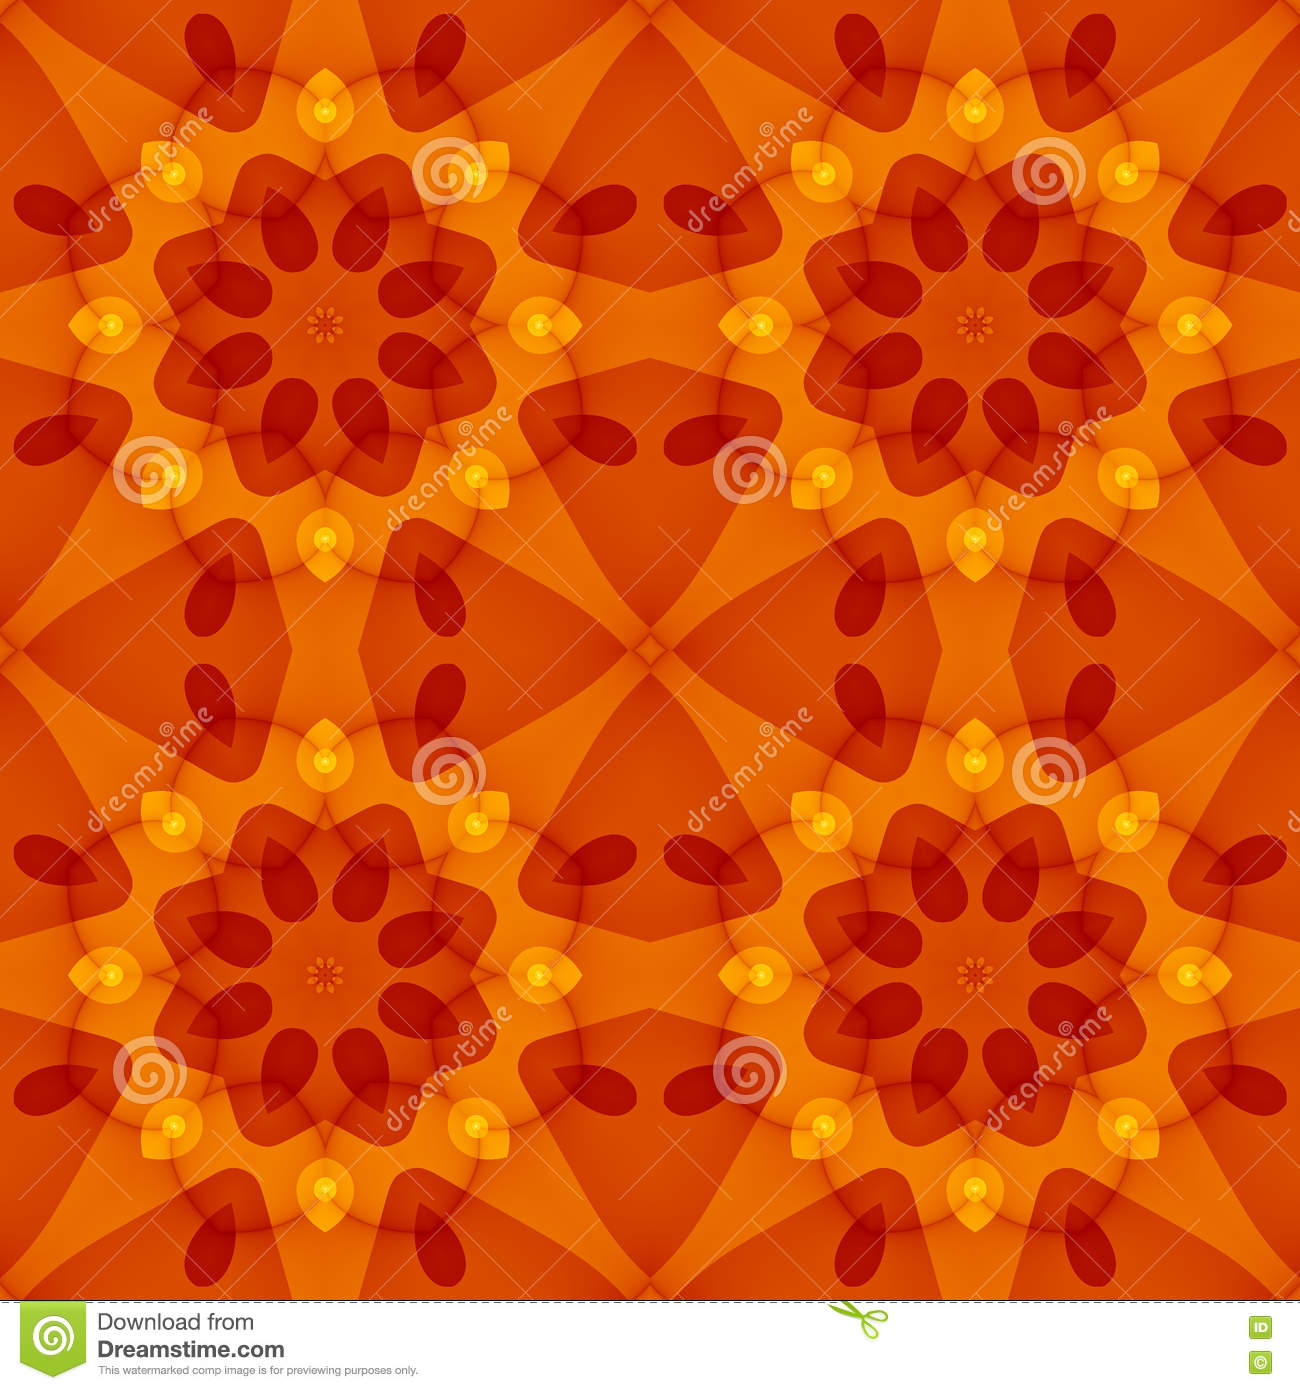 Brown bed sheet textures - Seamless Texture With A Warm Orange Red Floral Pattern